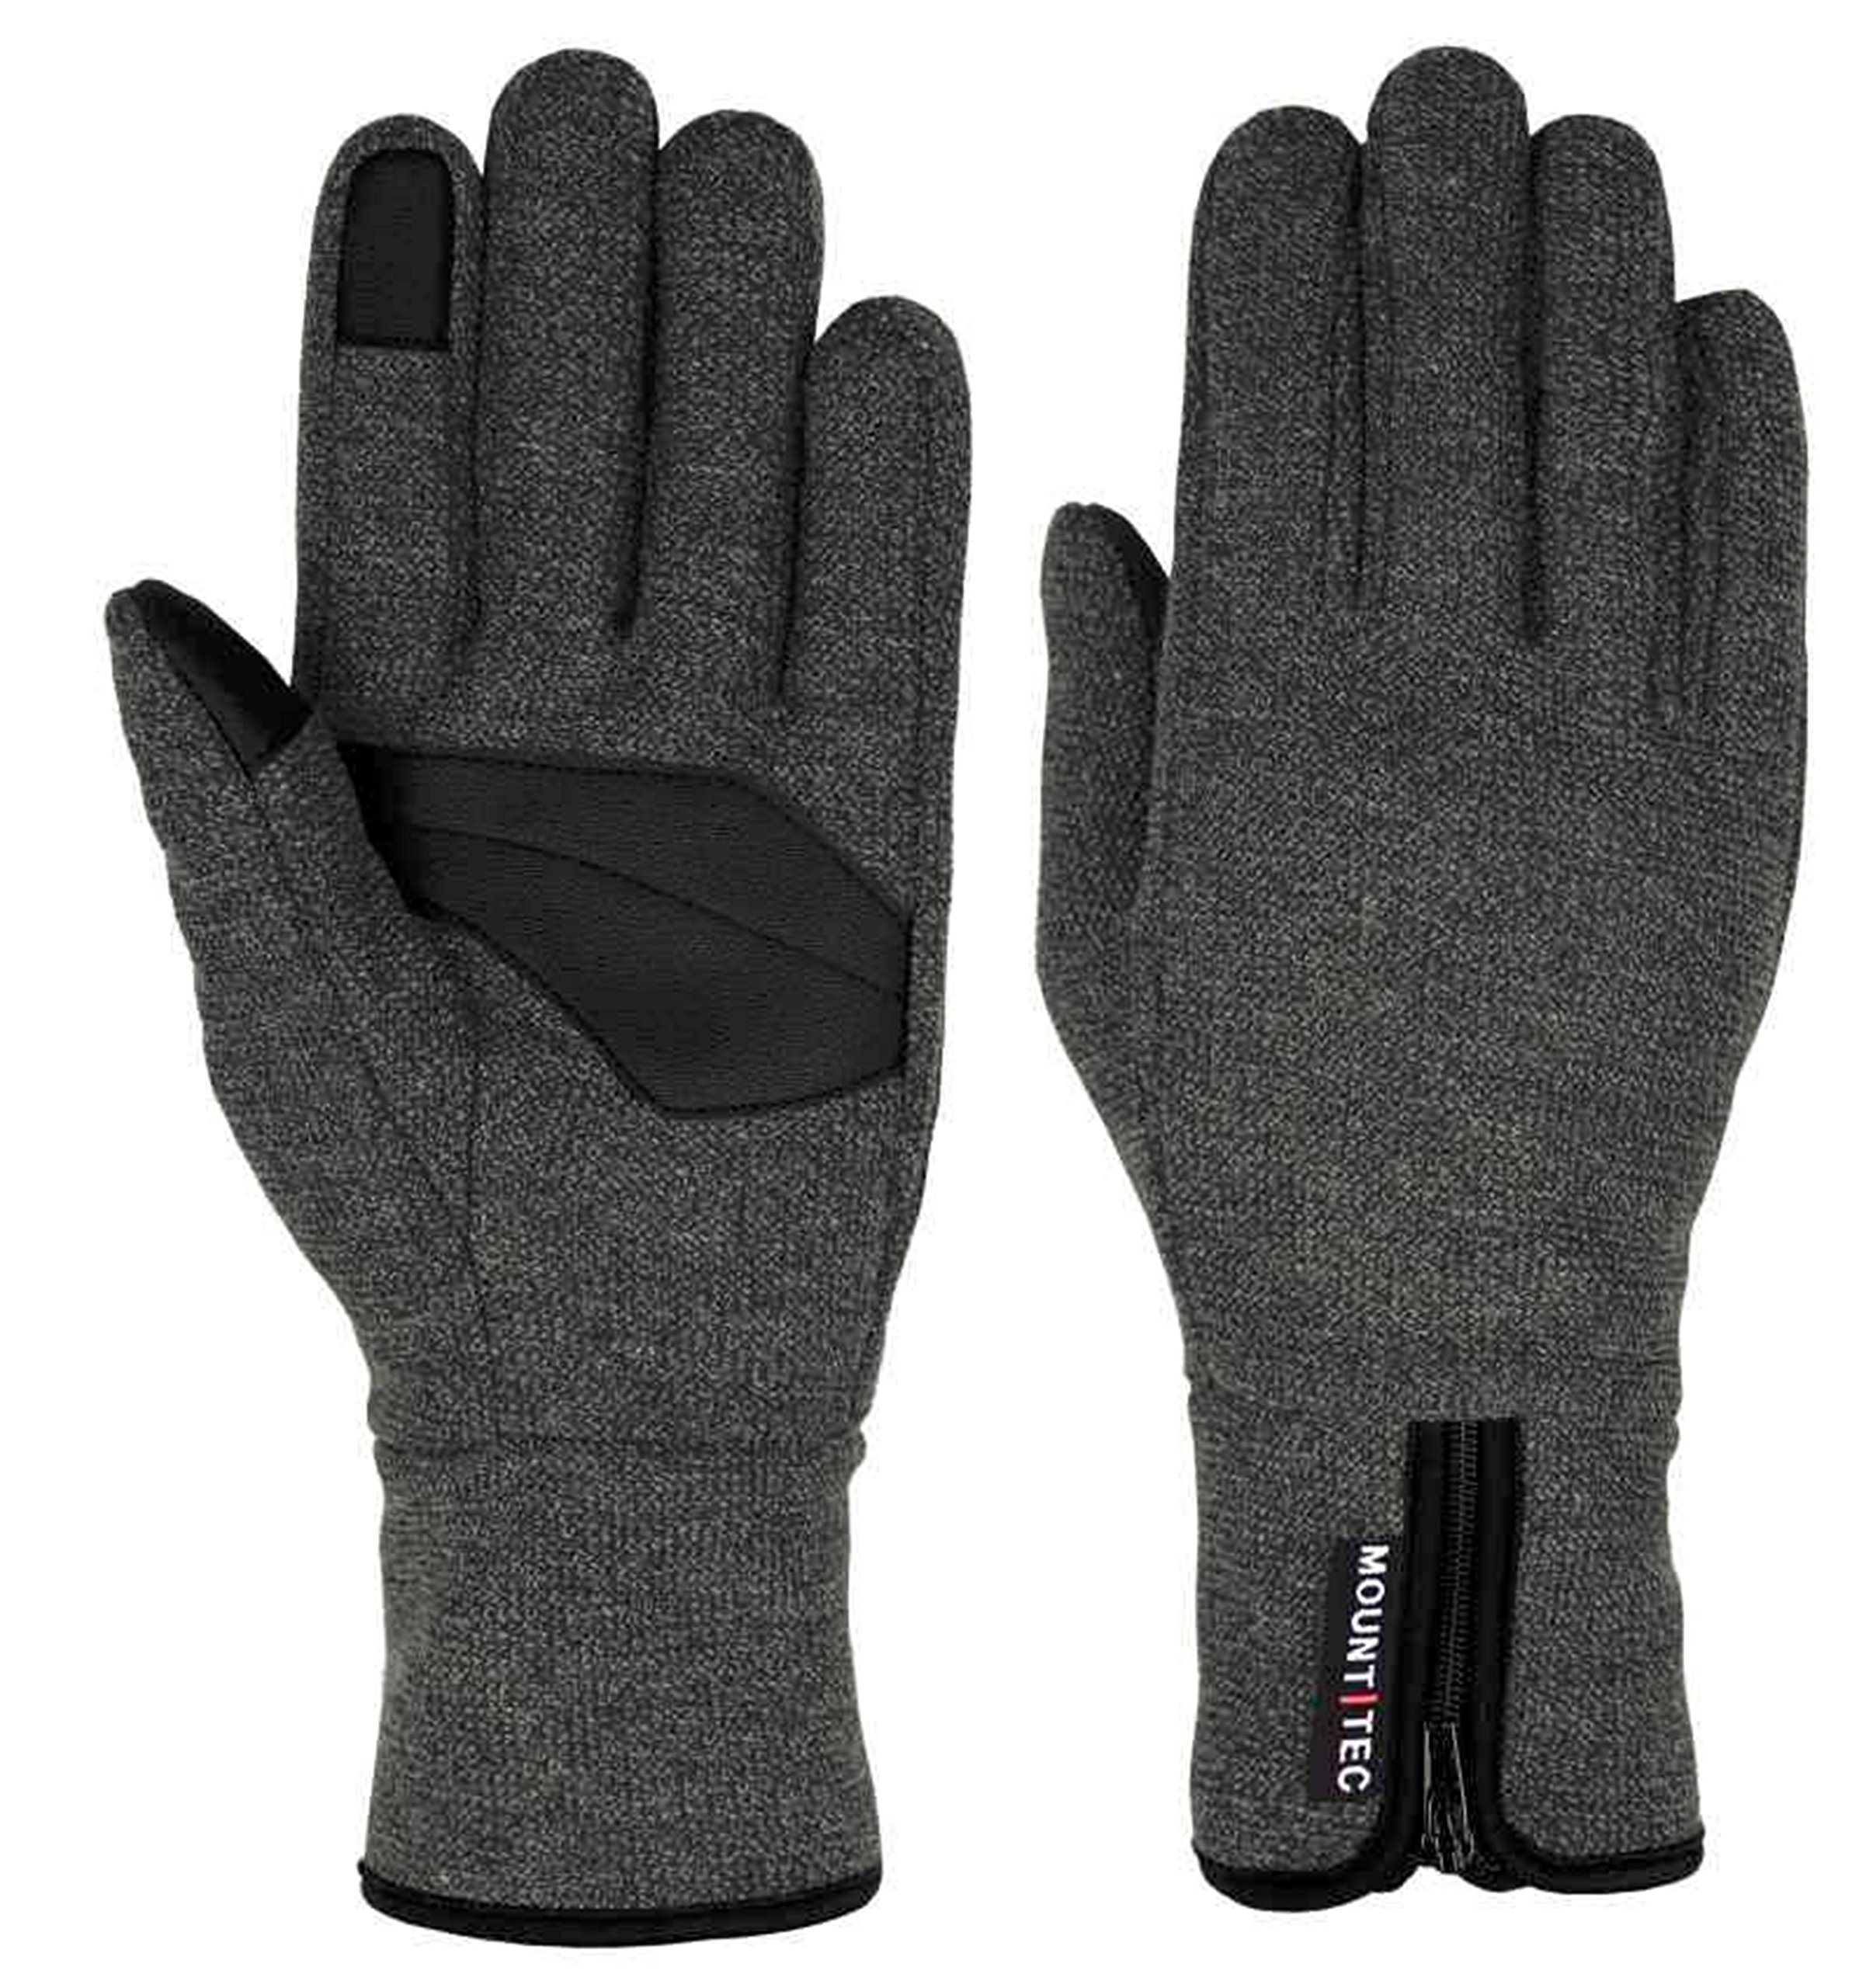 MOUNT TEC Mens Rugged Classic Knit Glove (Small)